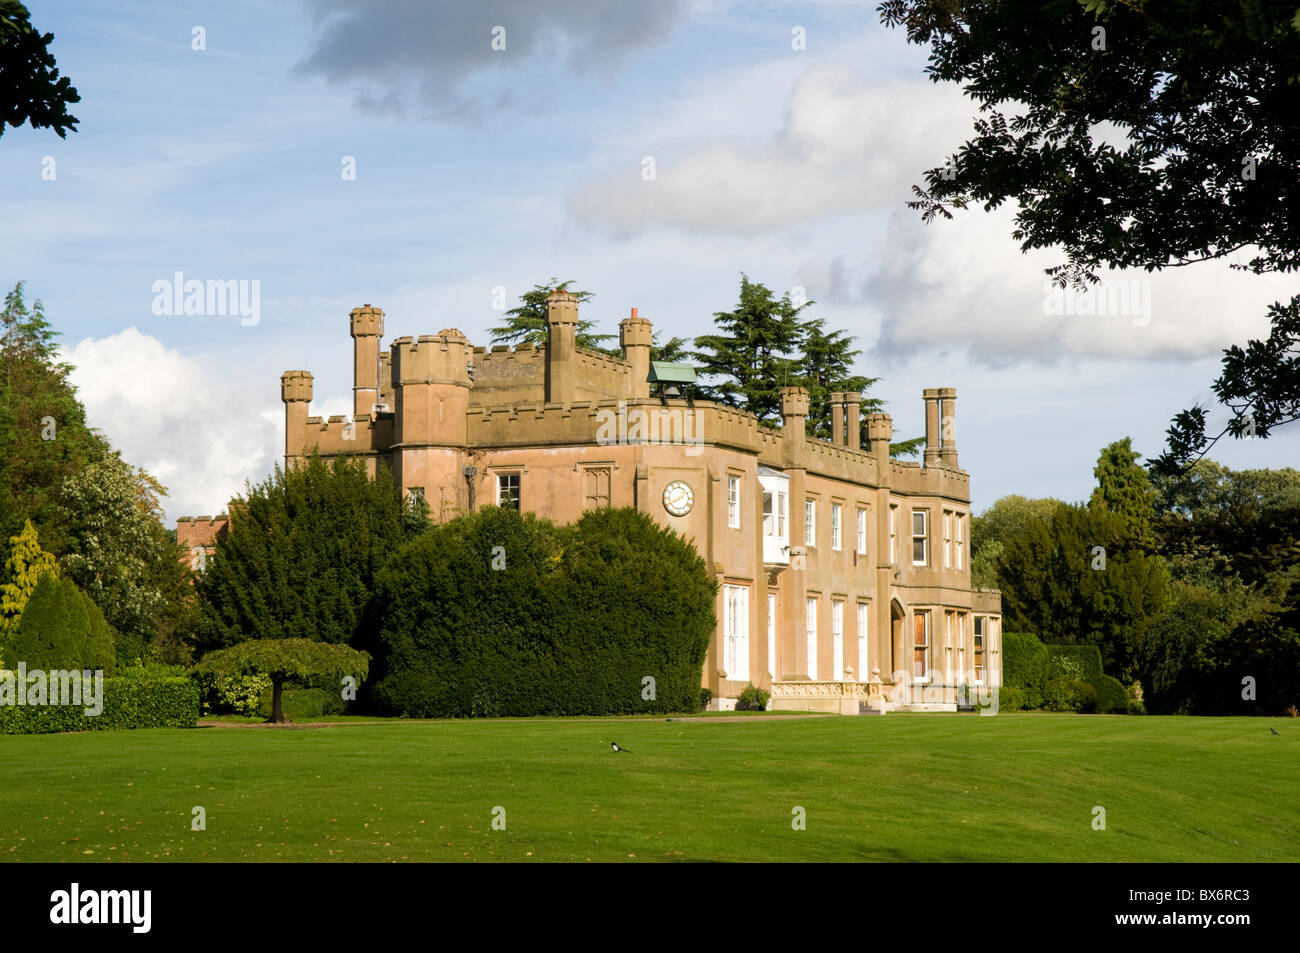 Nonsuch Mansion in Cheam, Surrey, England - Stock Image